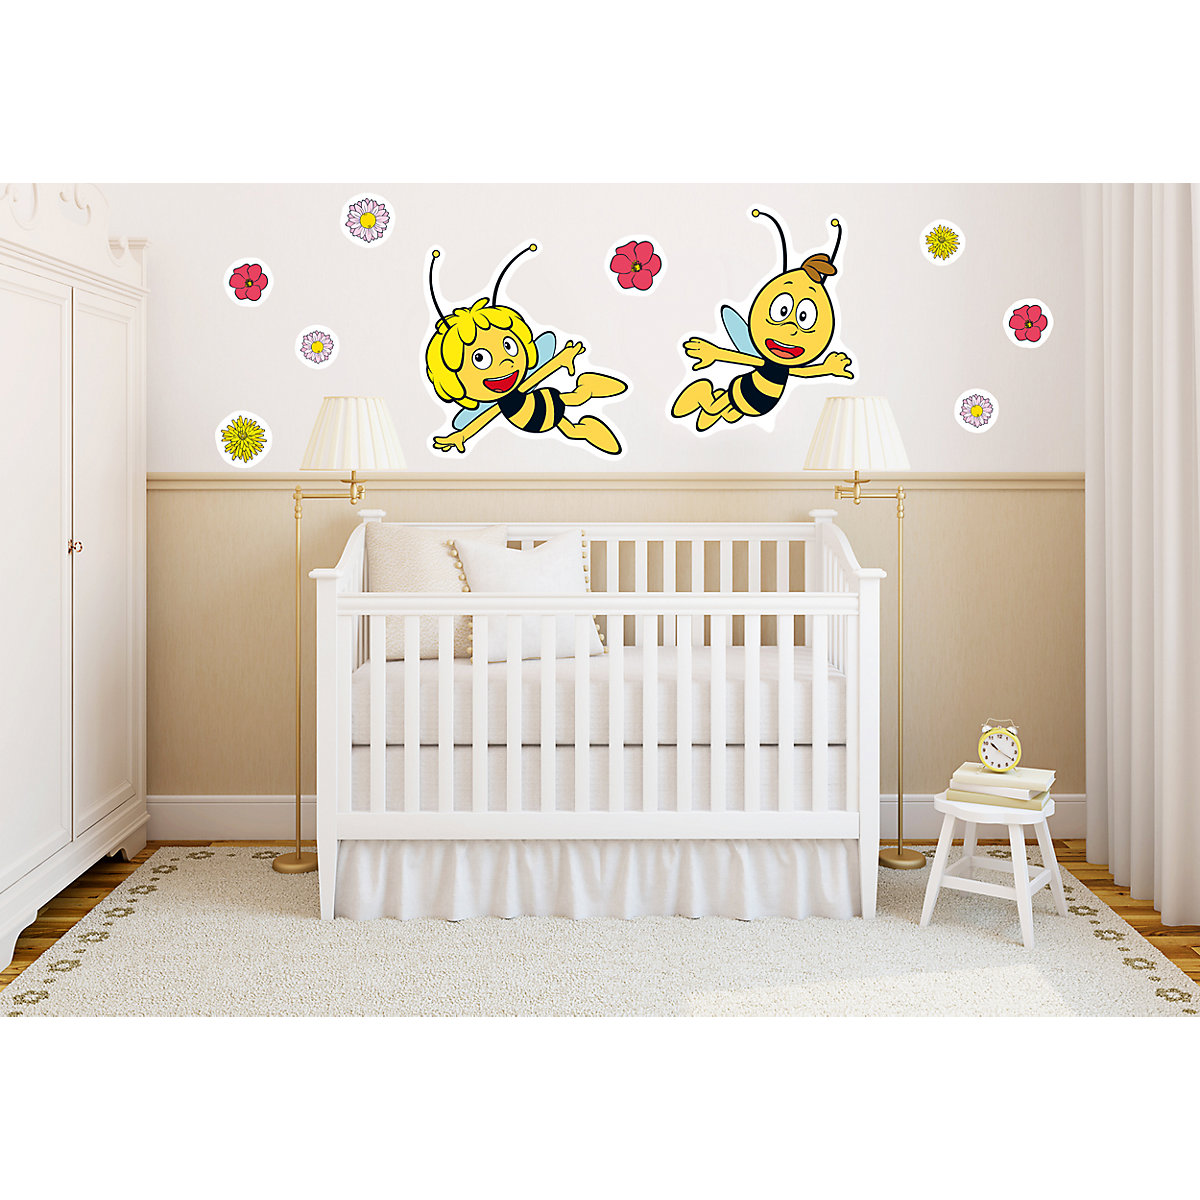 wandsticker biene maja und willi 67 x 47 cm biene maja mytoys. Black Bedroom Furniture Sets. Home Design Ideas